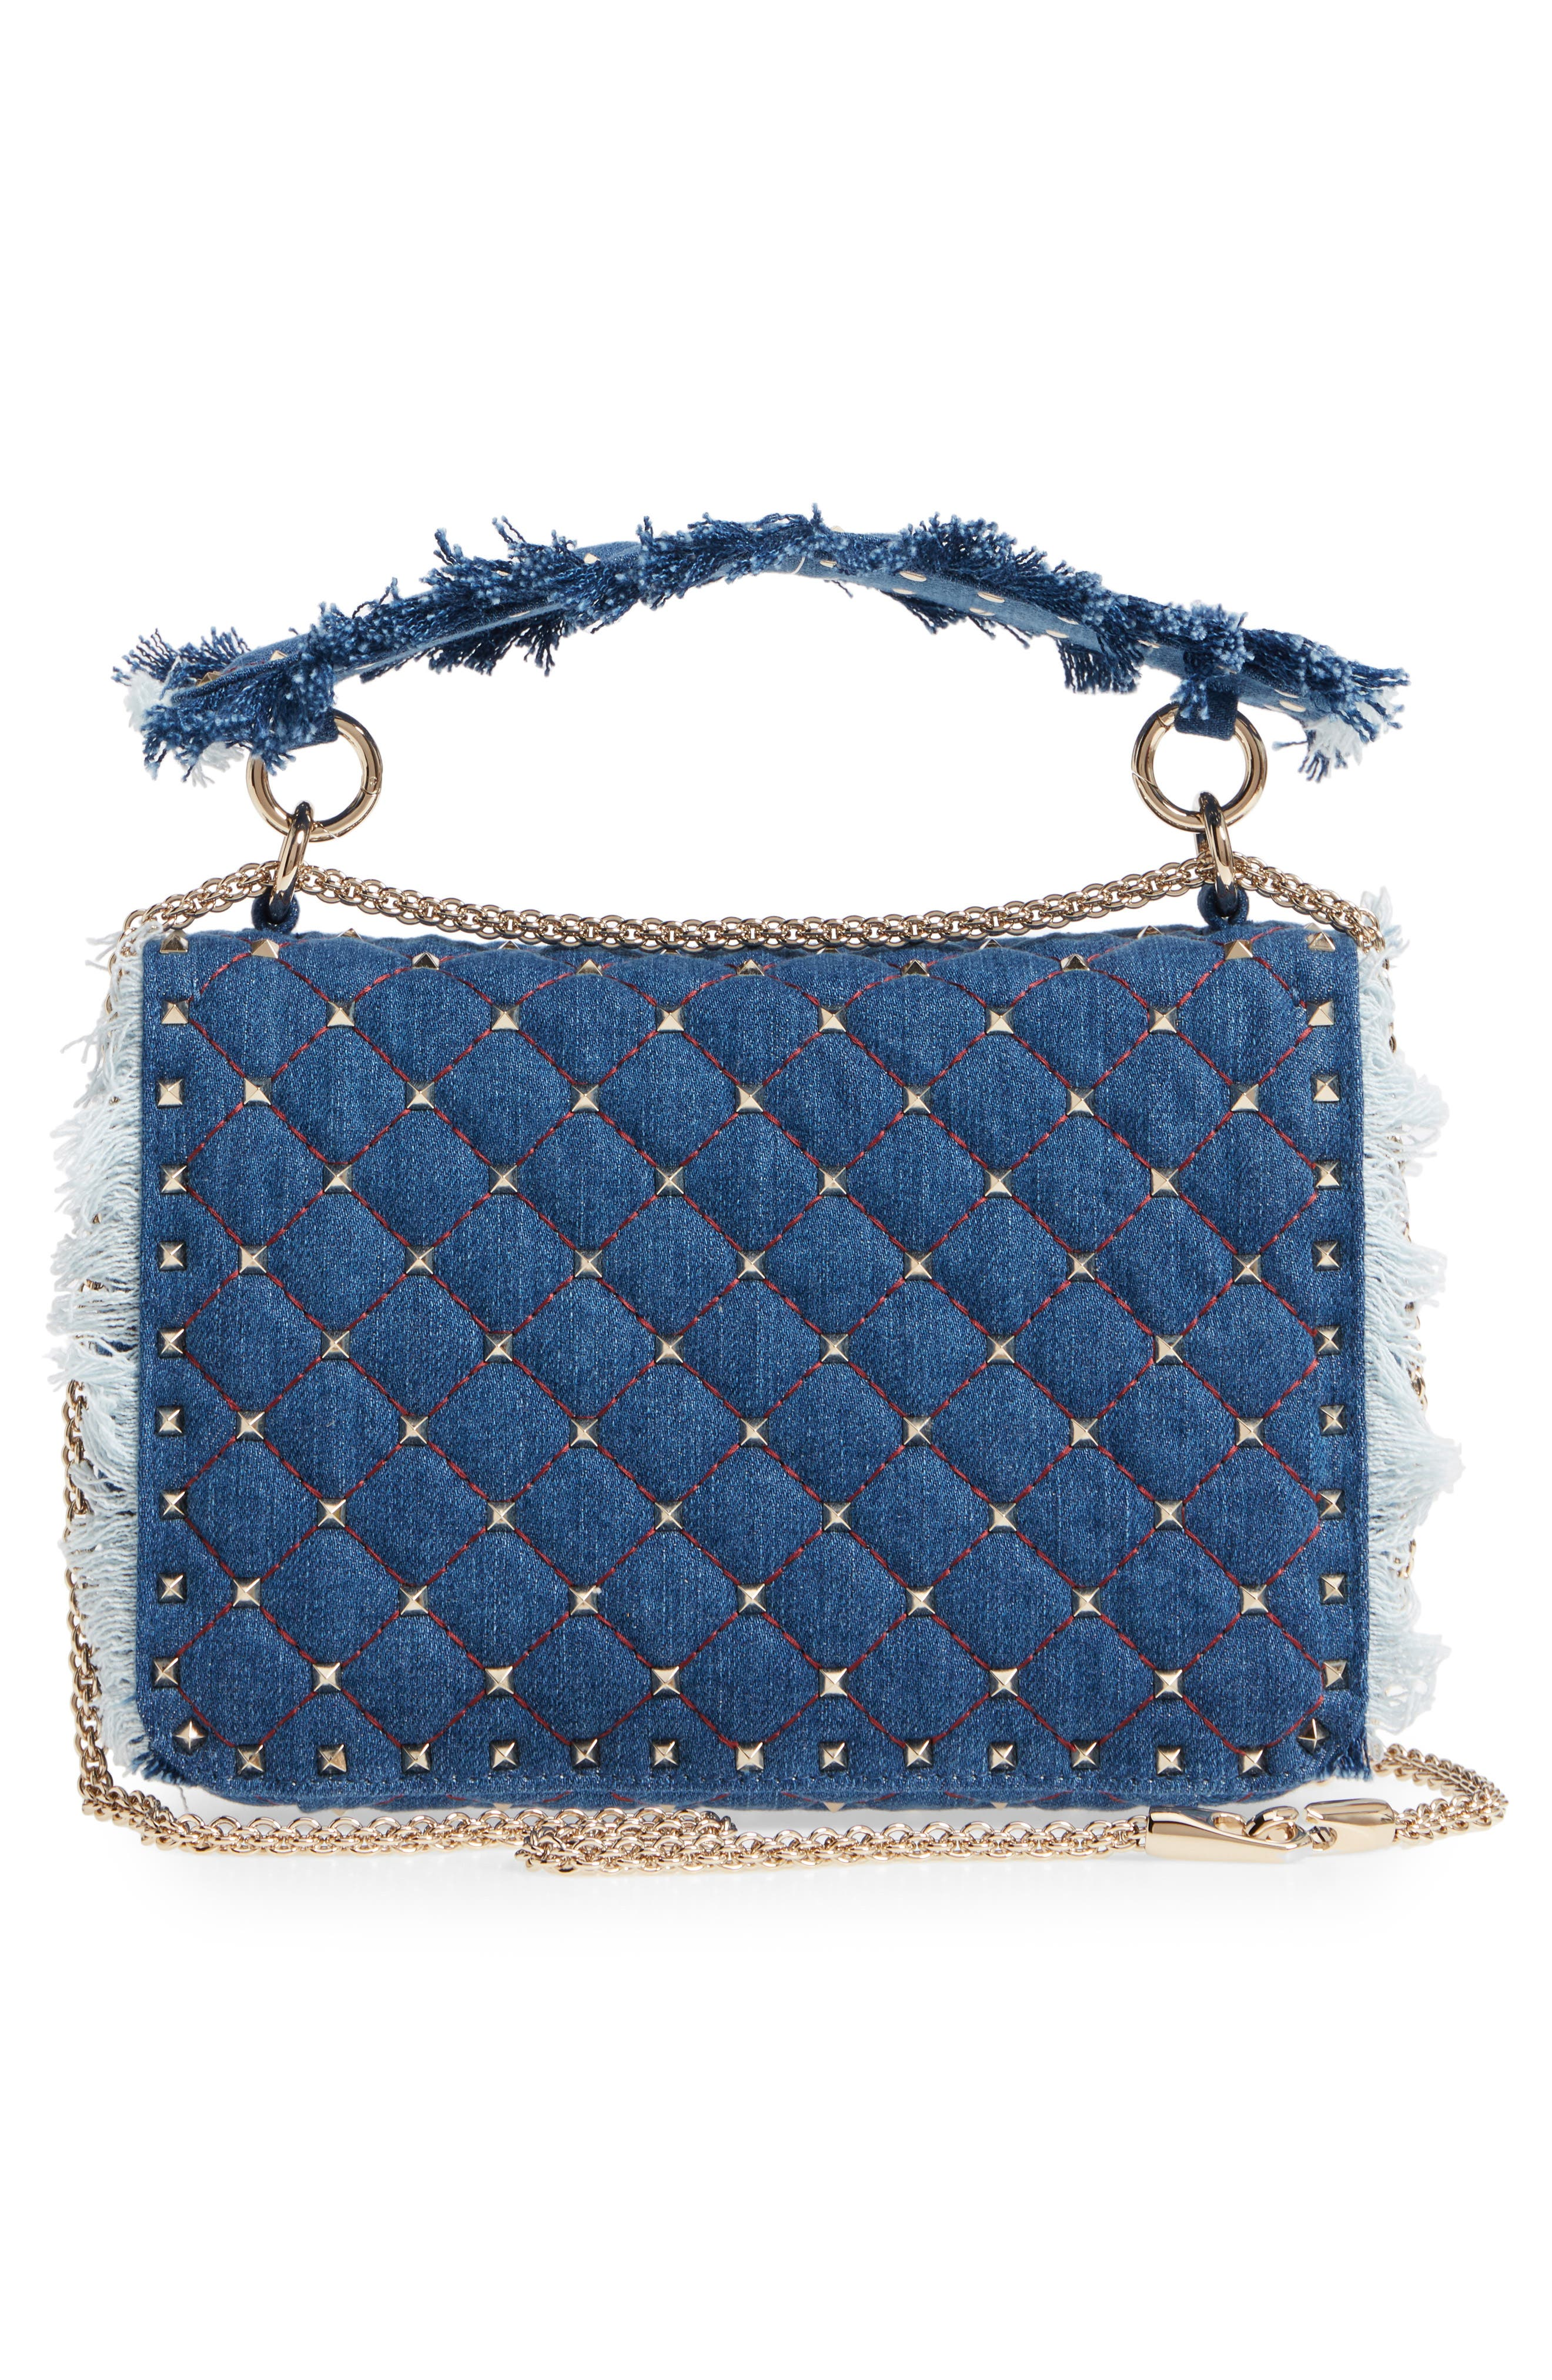 Rockstud Spike Medium Shoulder Bag,                             Alternate thumbnail 3, color,                             DENIM